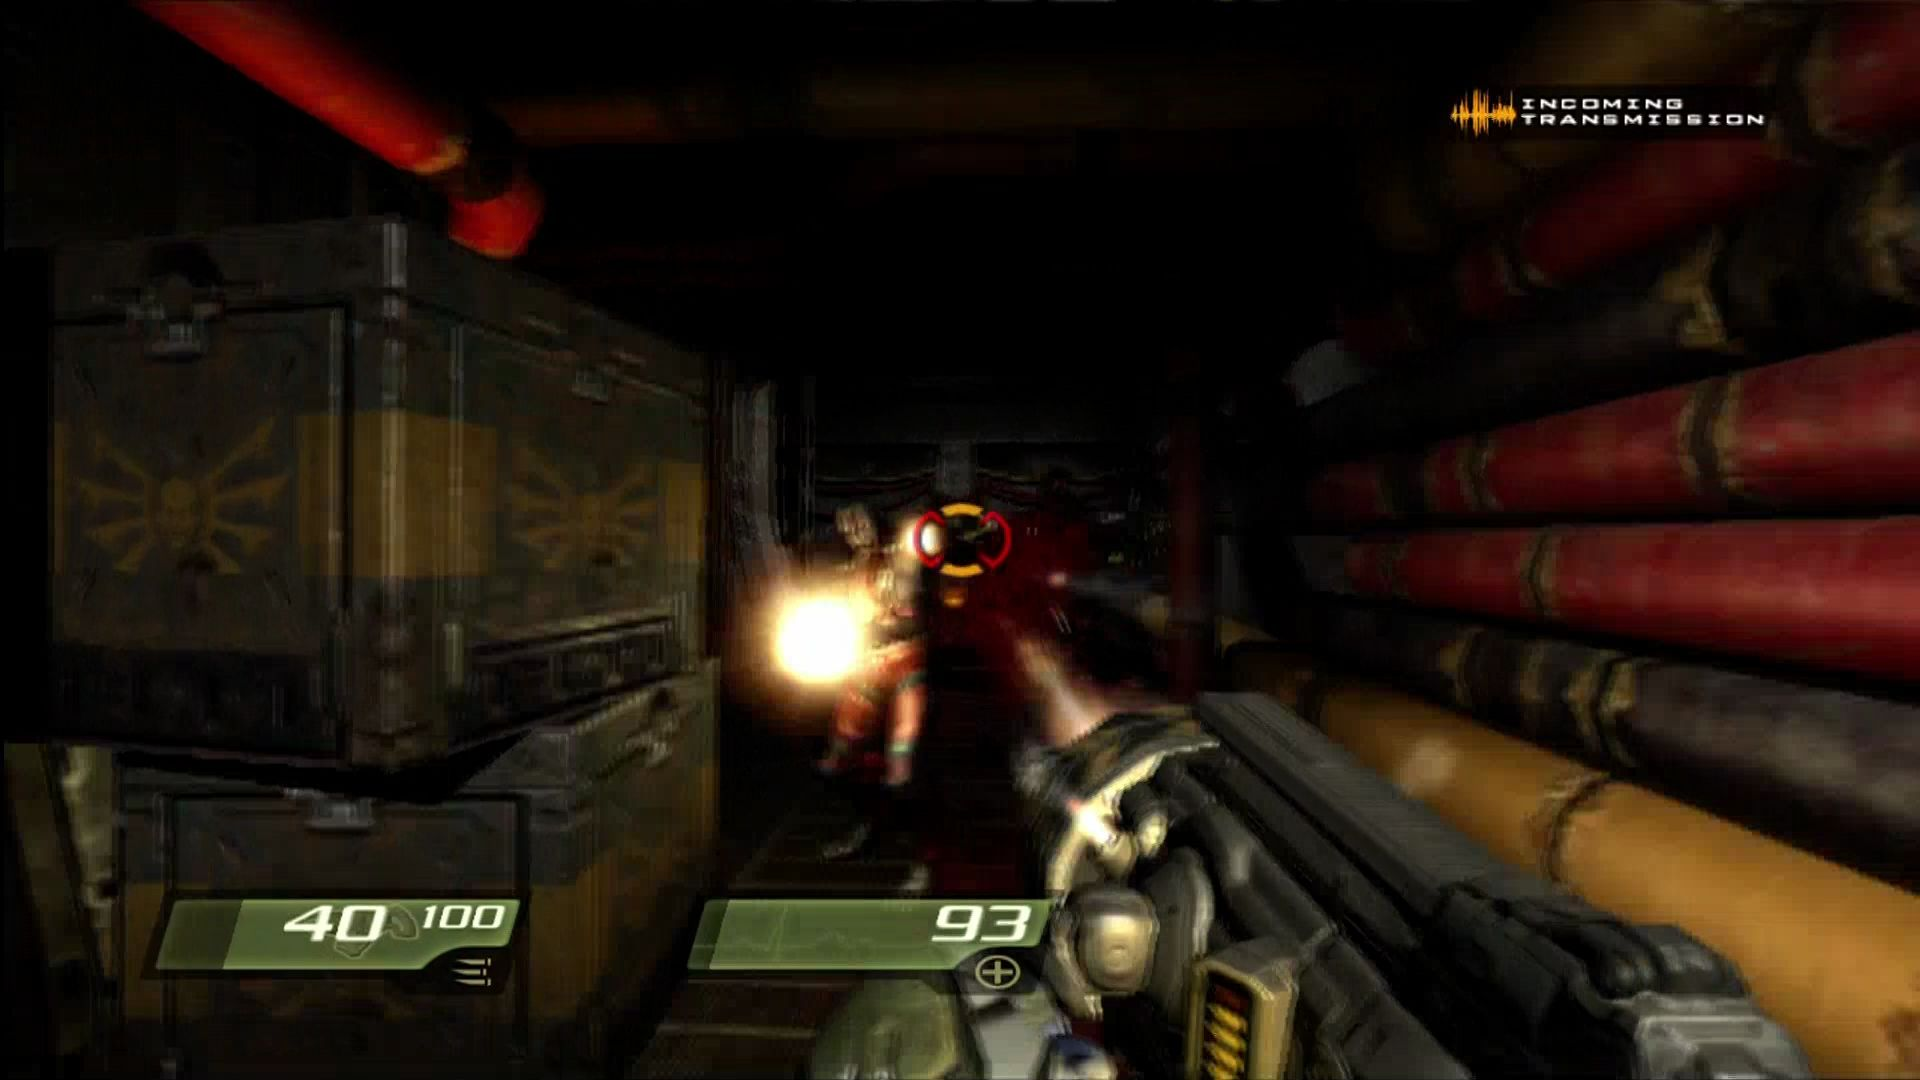 Quake 4 Xbox 360 Blur effect when hit.